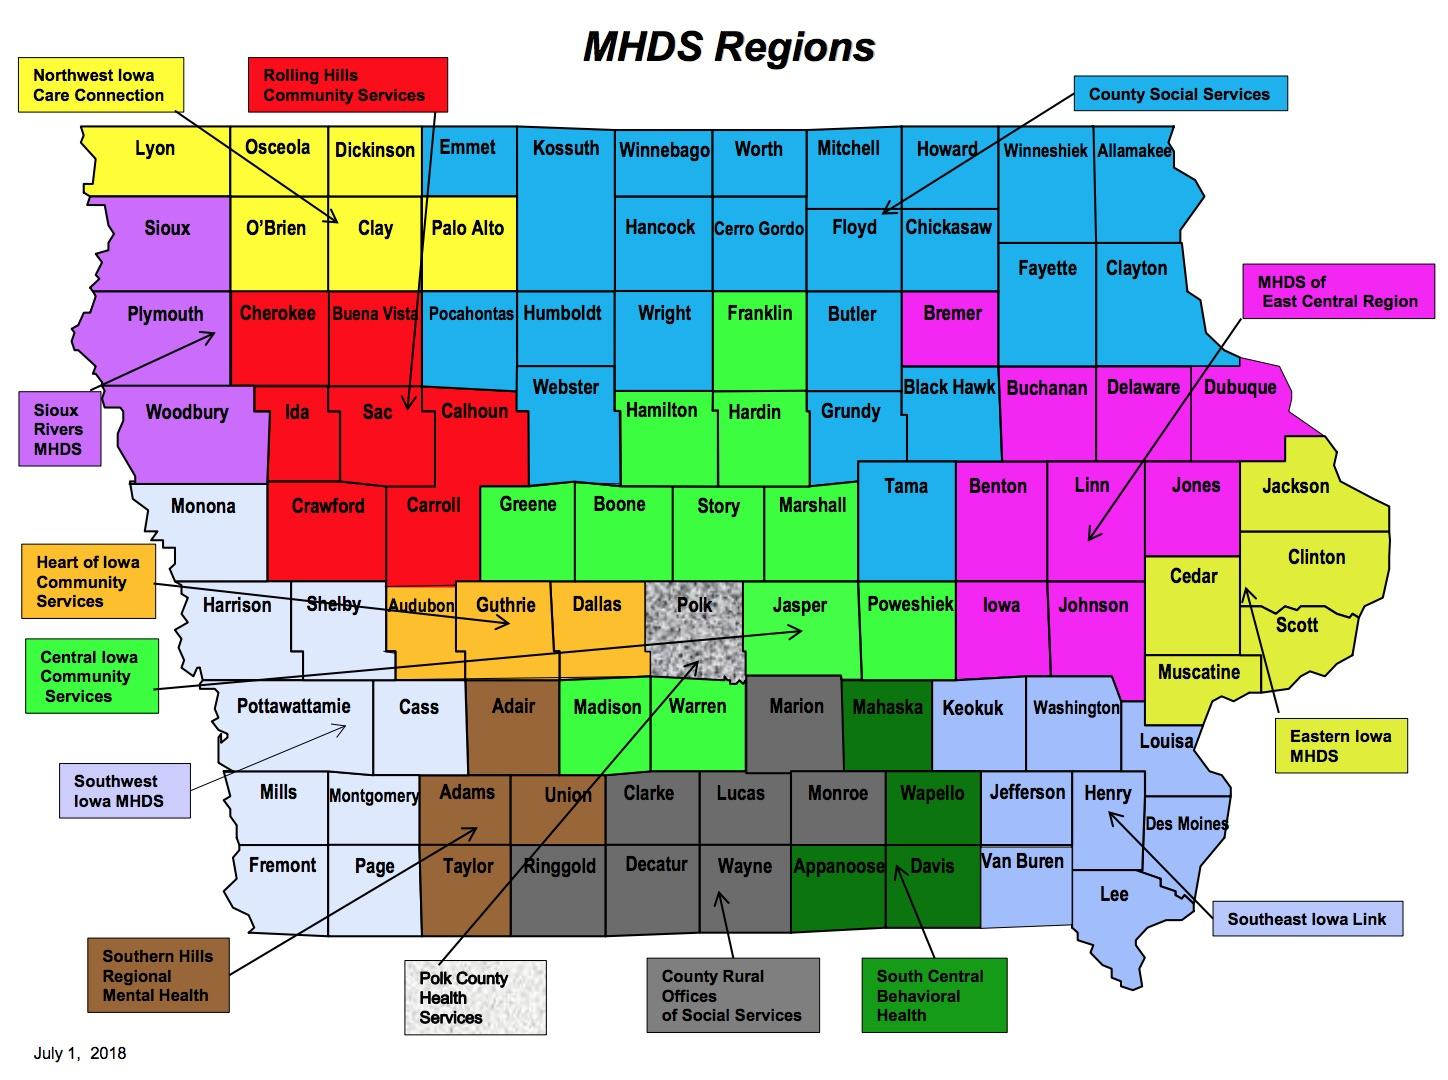 Foxhoven Counties Can Move Mental Health Regions As Long As Core